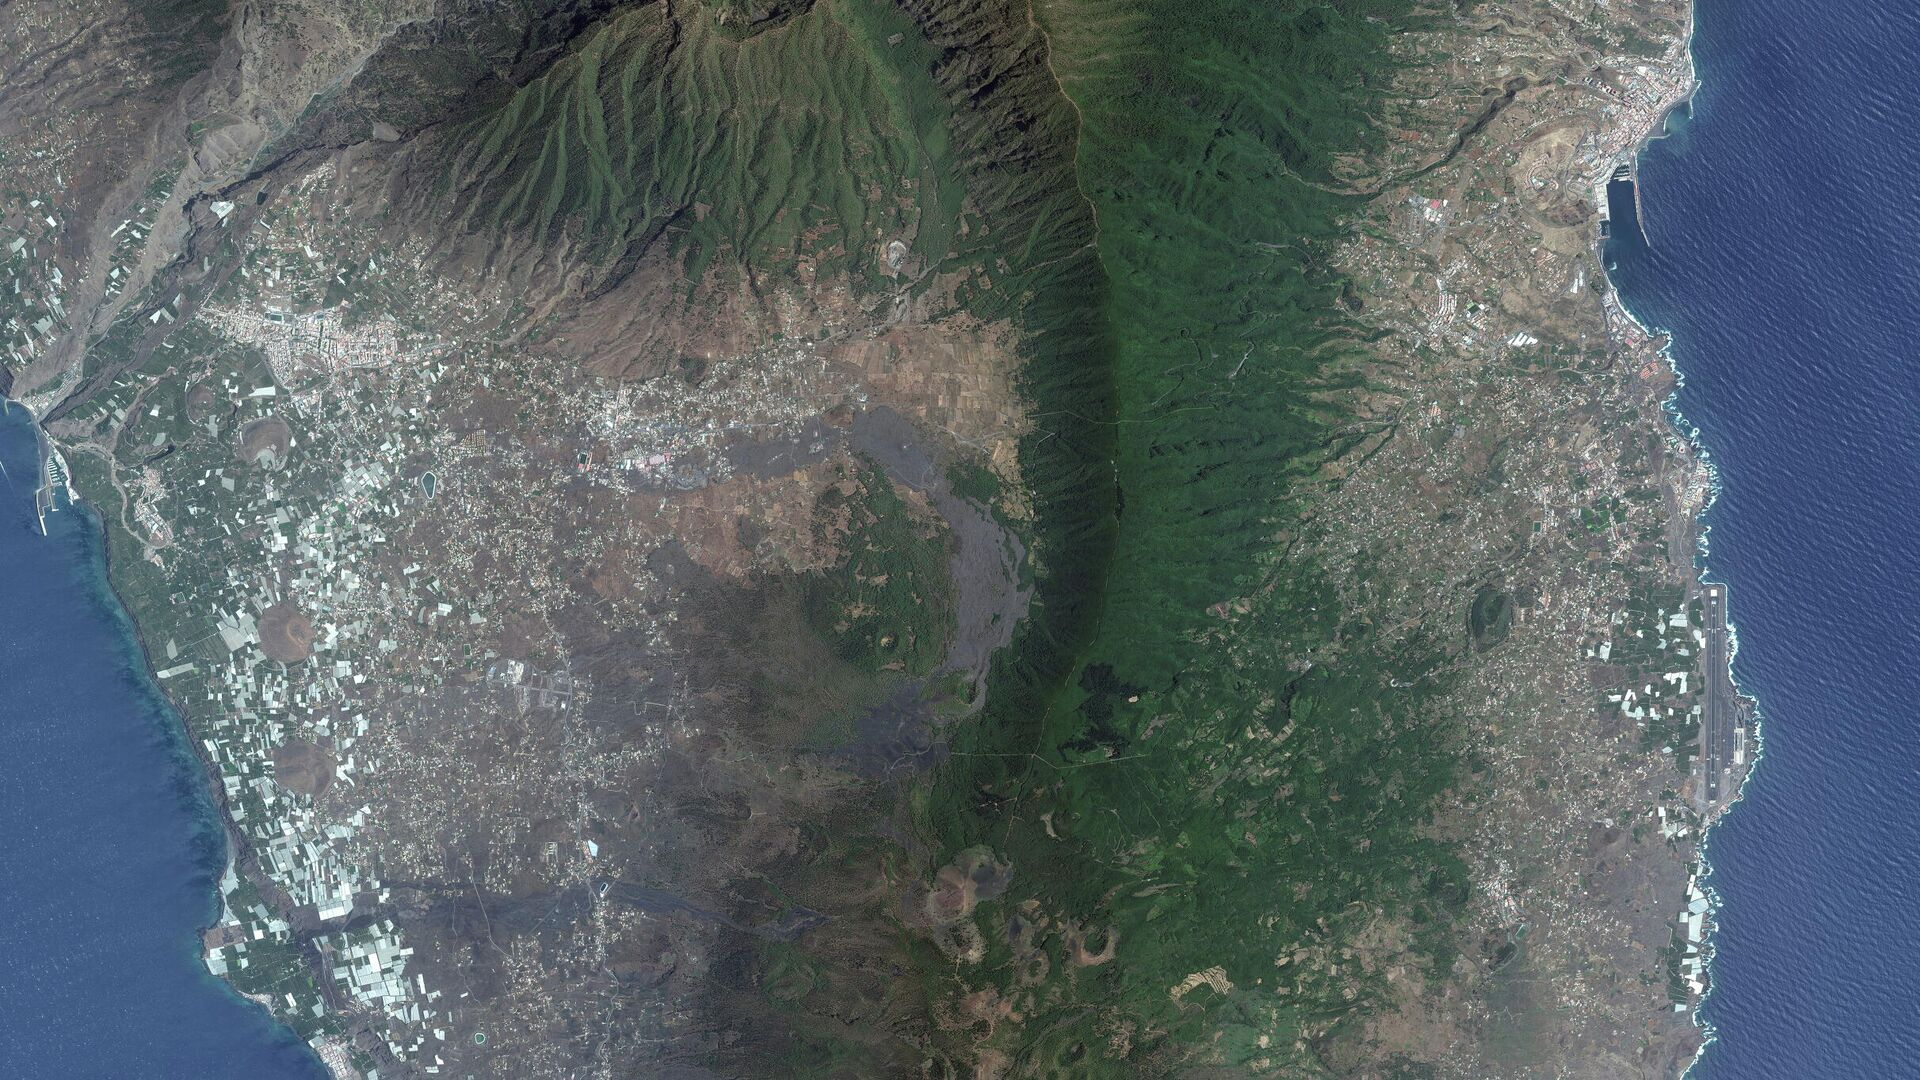 A satellite image shows the overview of Cumbre Vieja volcano on the island of La Palma, Spain on September 17, 2021 before the eruptions of the volcano. - Sputnik International, 1920, 23.09.2021